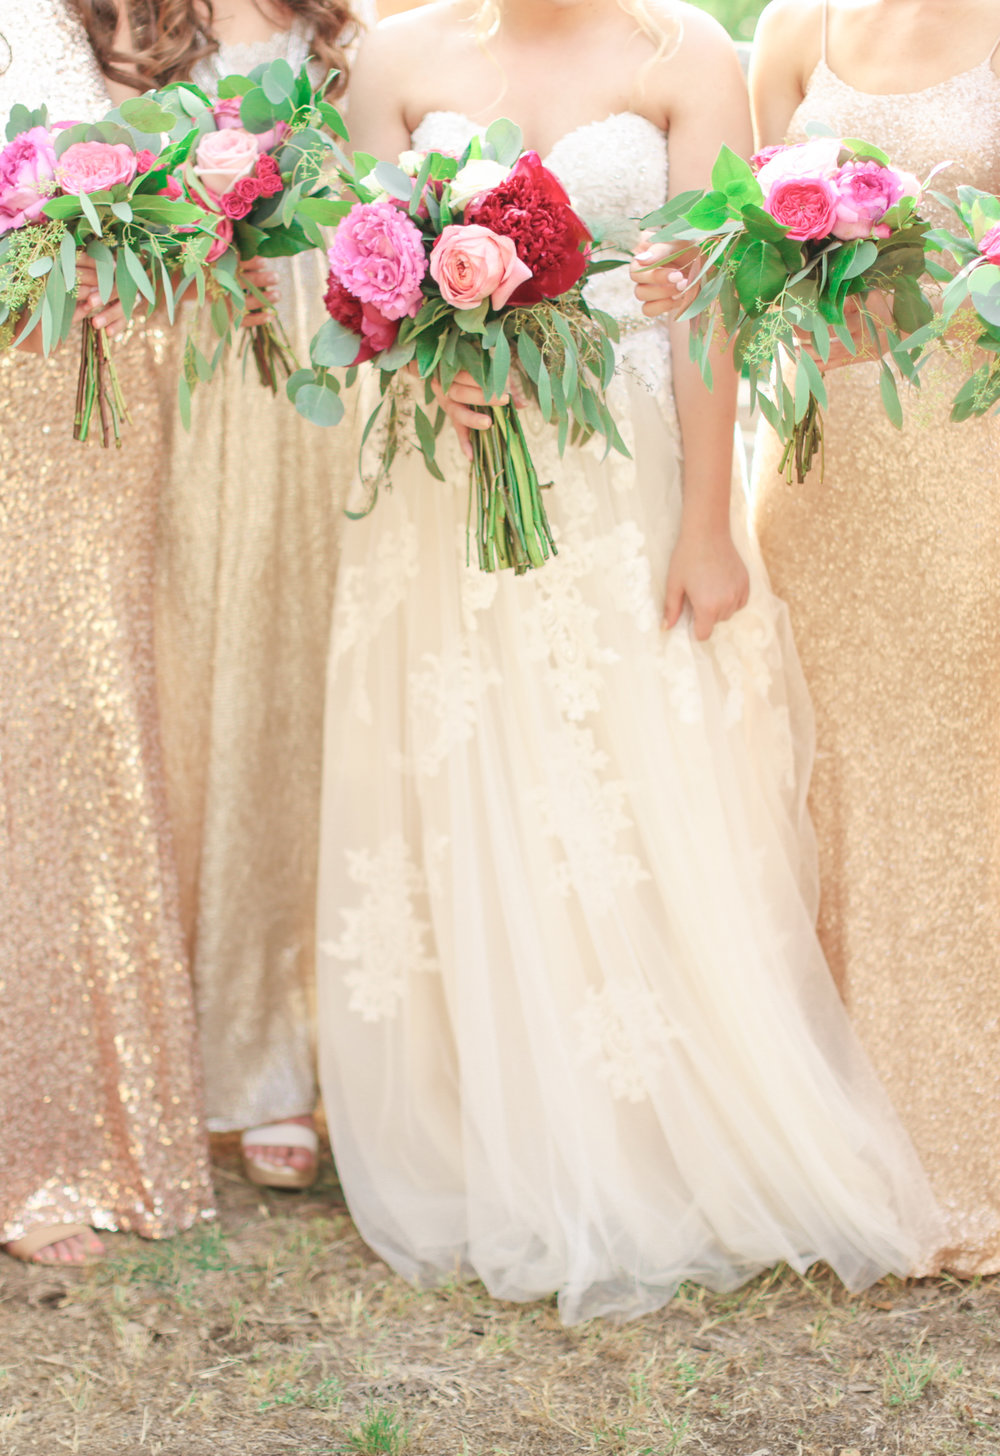 Lewis Wedding Collection - Shara Jo Photography-511.jpg